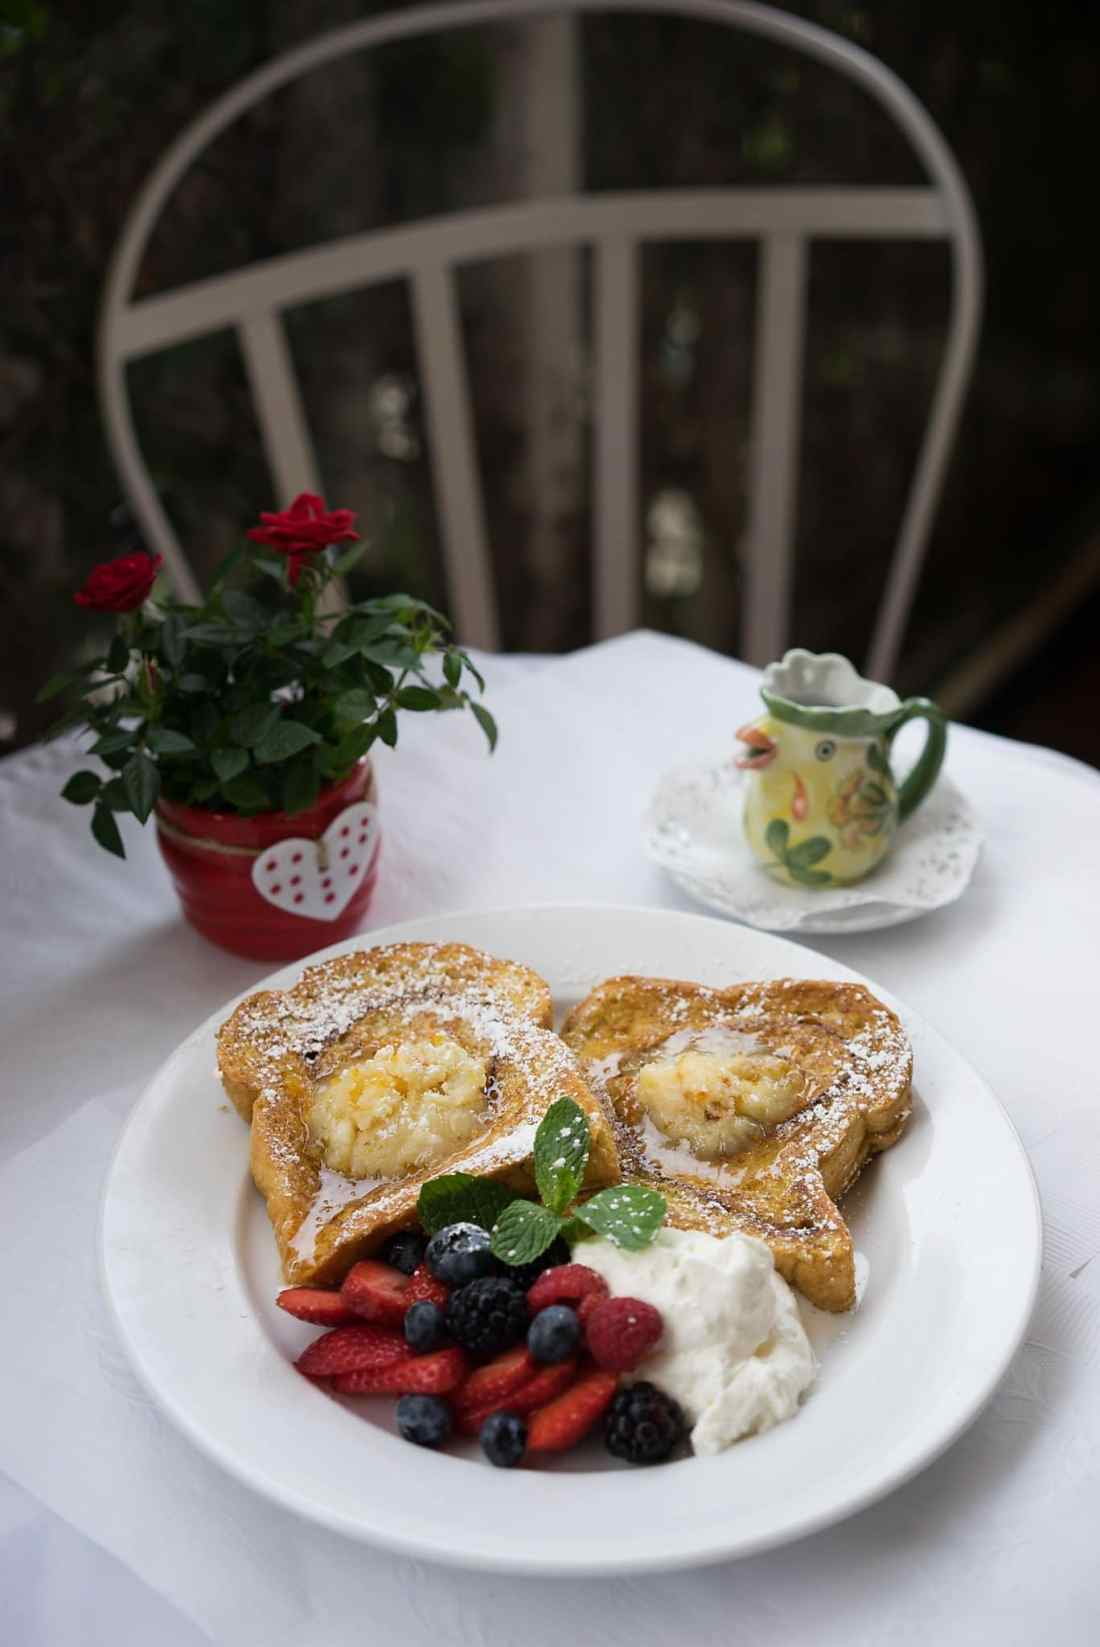 Redhouse Cafe One of 5 California Hot Spots for Foodies